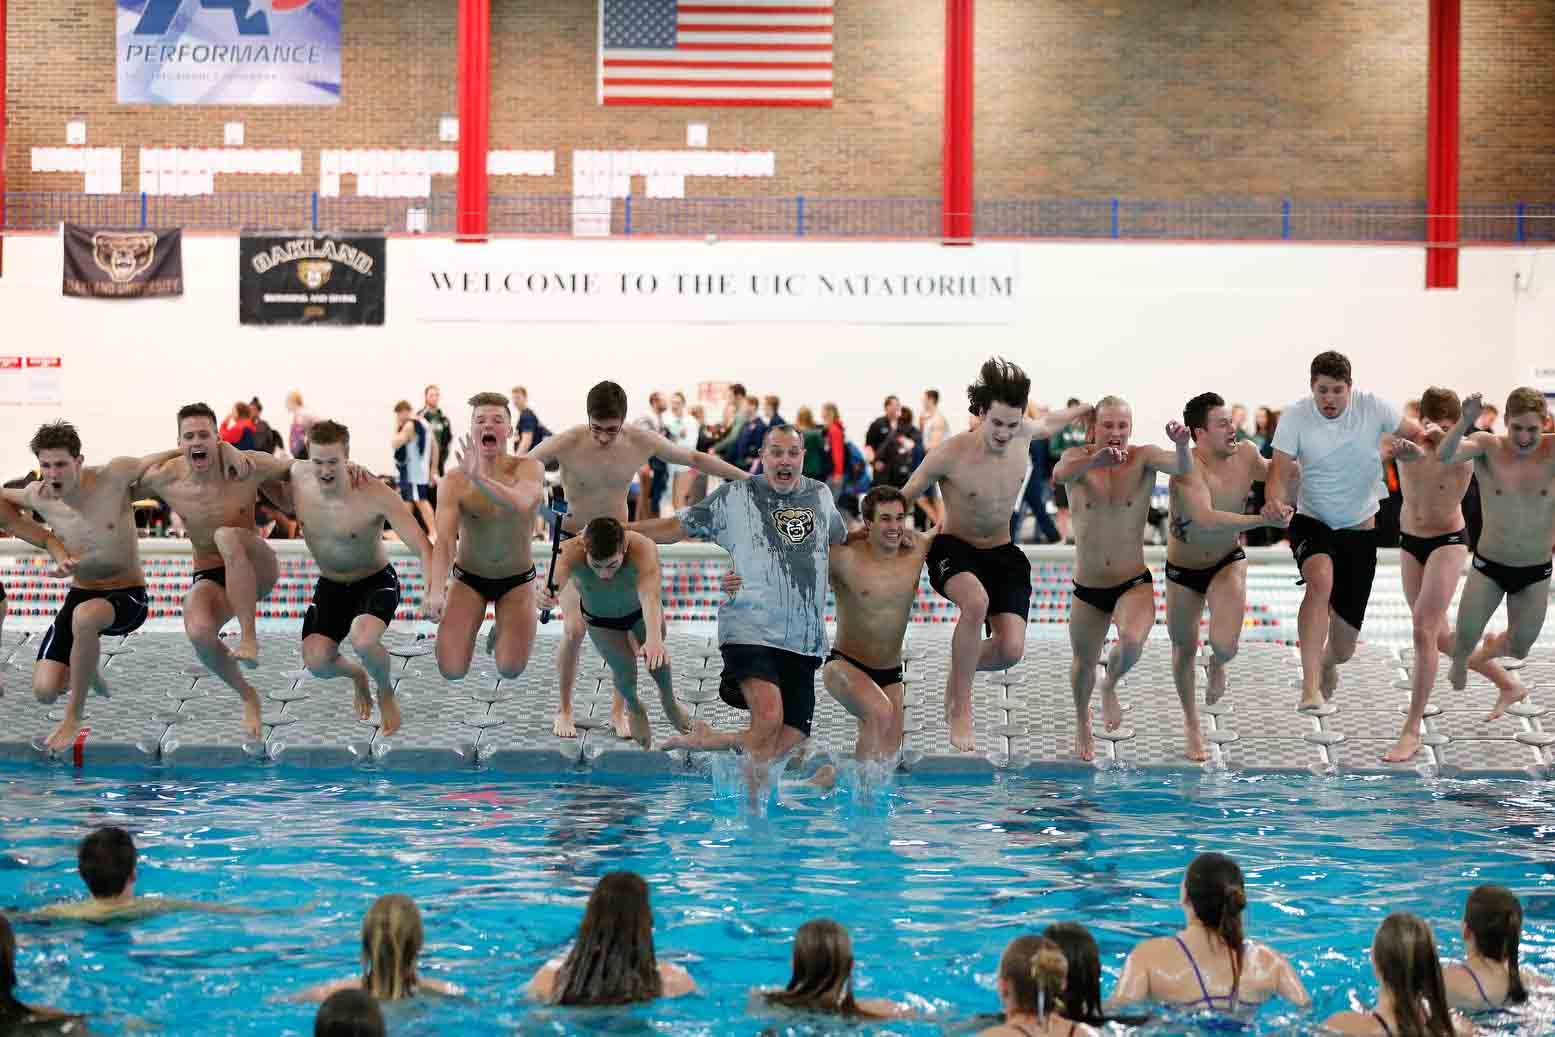 Day 4 - 2017 Horizon League Swimming & Diving Championships at the UIC Natatorium on Saturday, February 25, 2017 in Chicago. Oakland's men's and women's teams won their 39th and 23rd straight Horizon League titles, respectively.